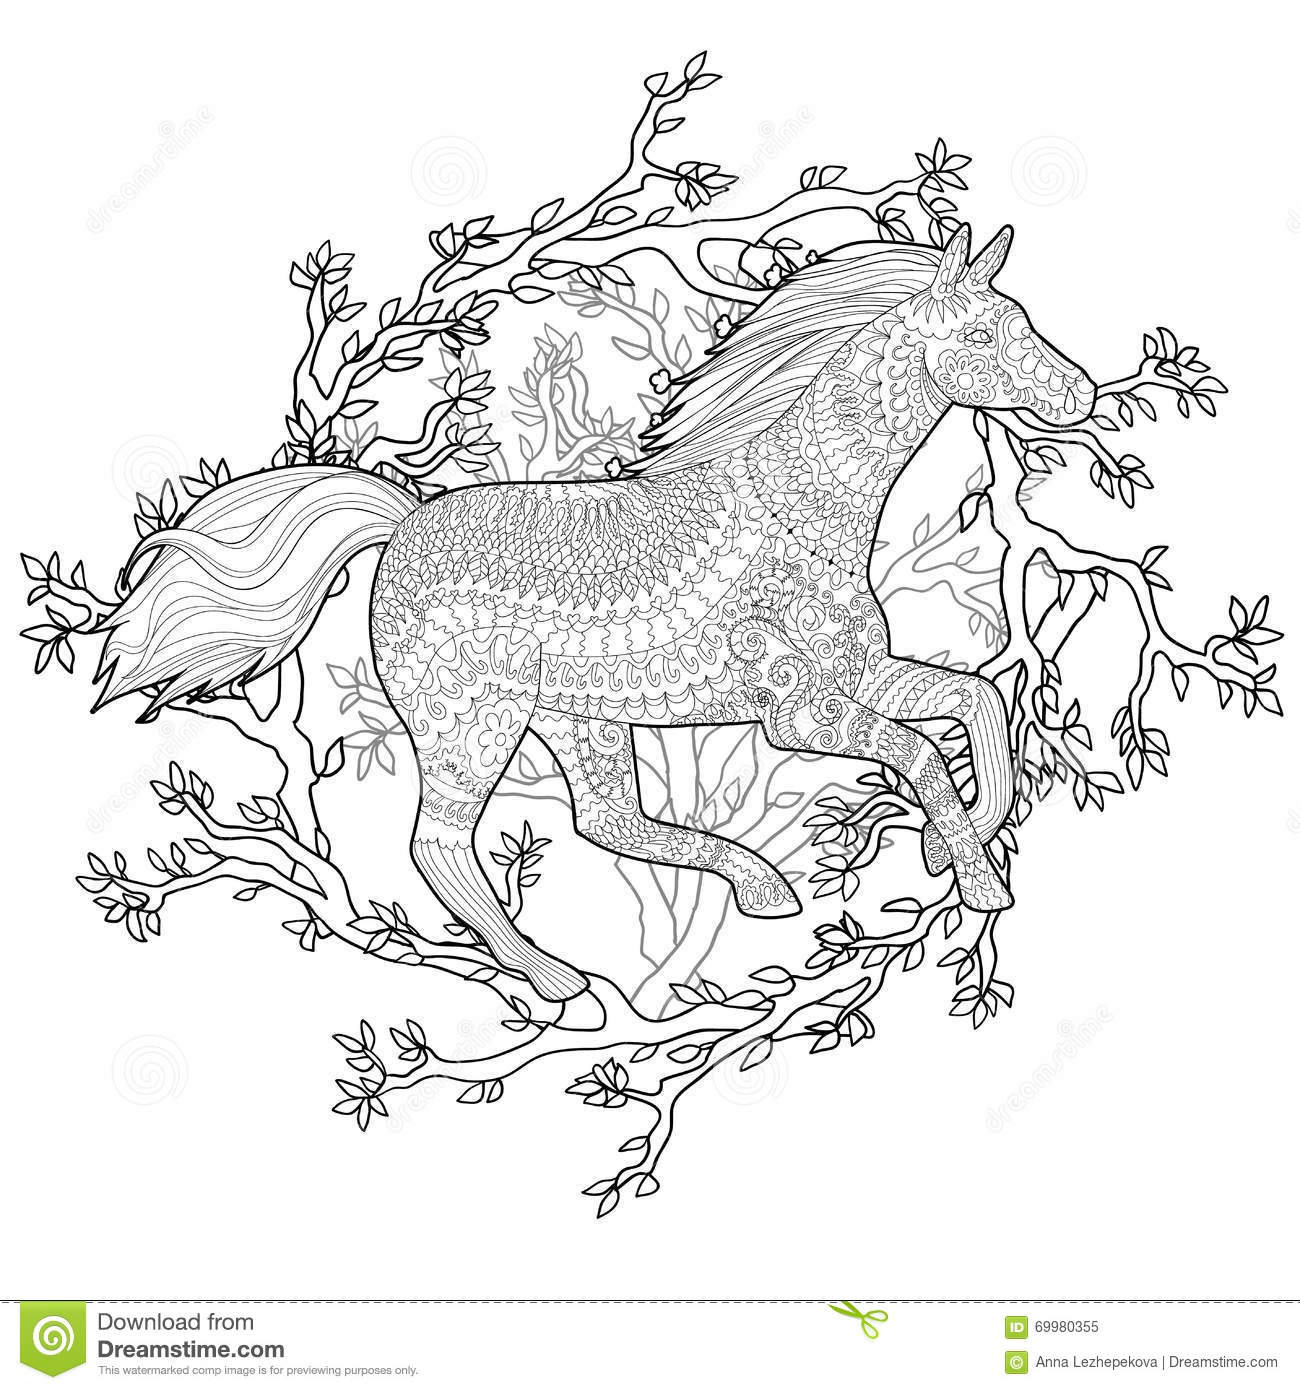 Running horse in zentangle style stock vector illustration of adult coloring page for antistress art therapy running horse in zentangle style template for t shirt tattoo poster or cover vector illustration maxwellsz